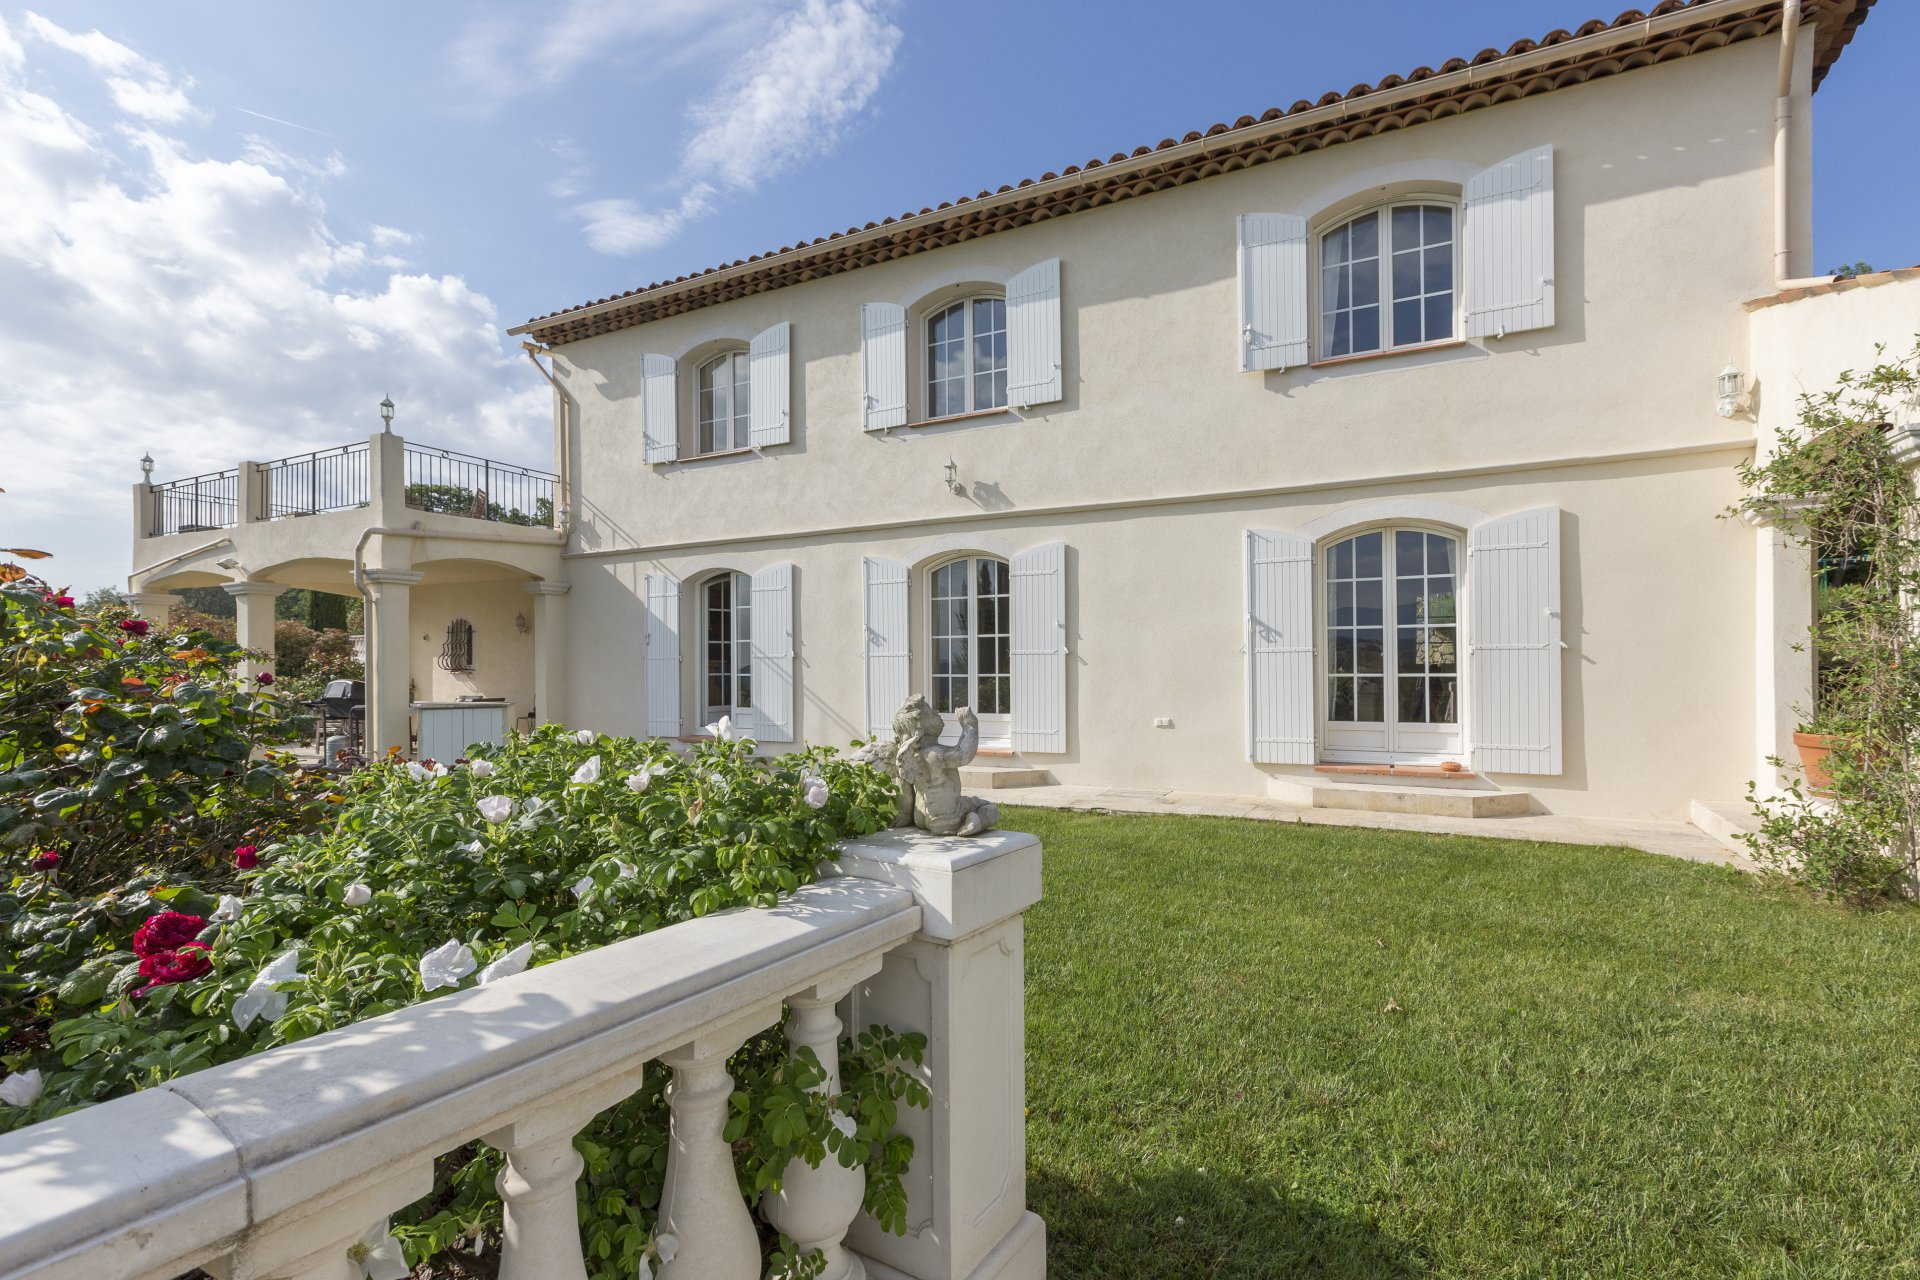 Valbonne : Spacious family home peacefully located with super views - Valbonne